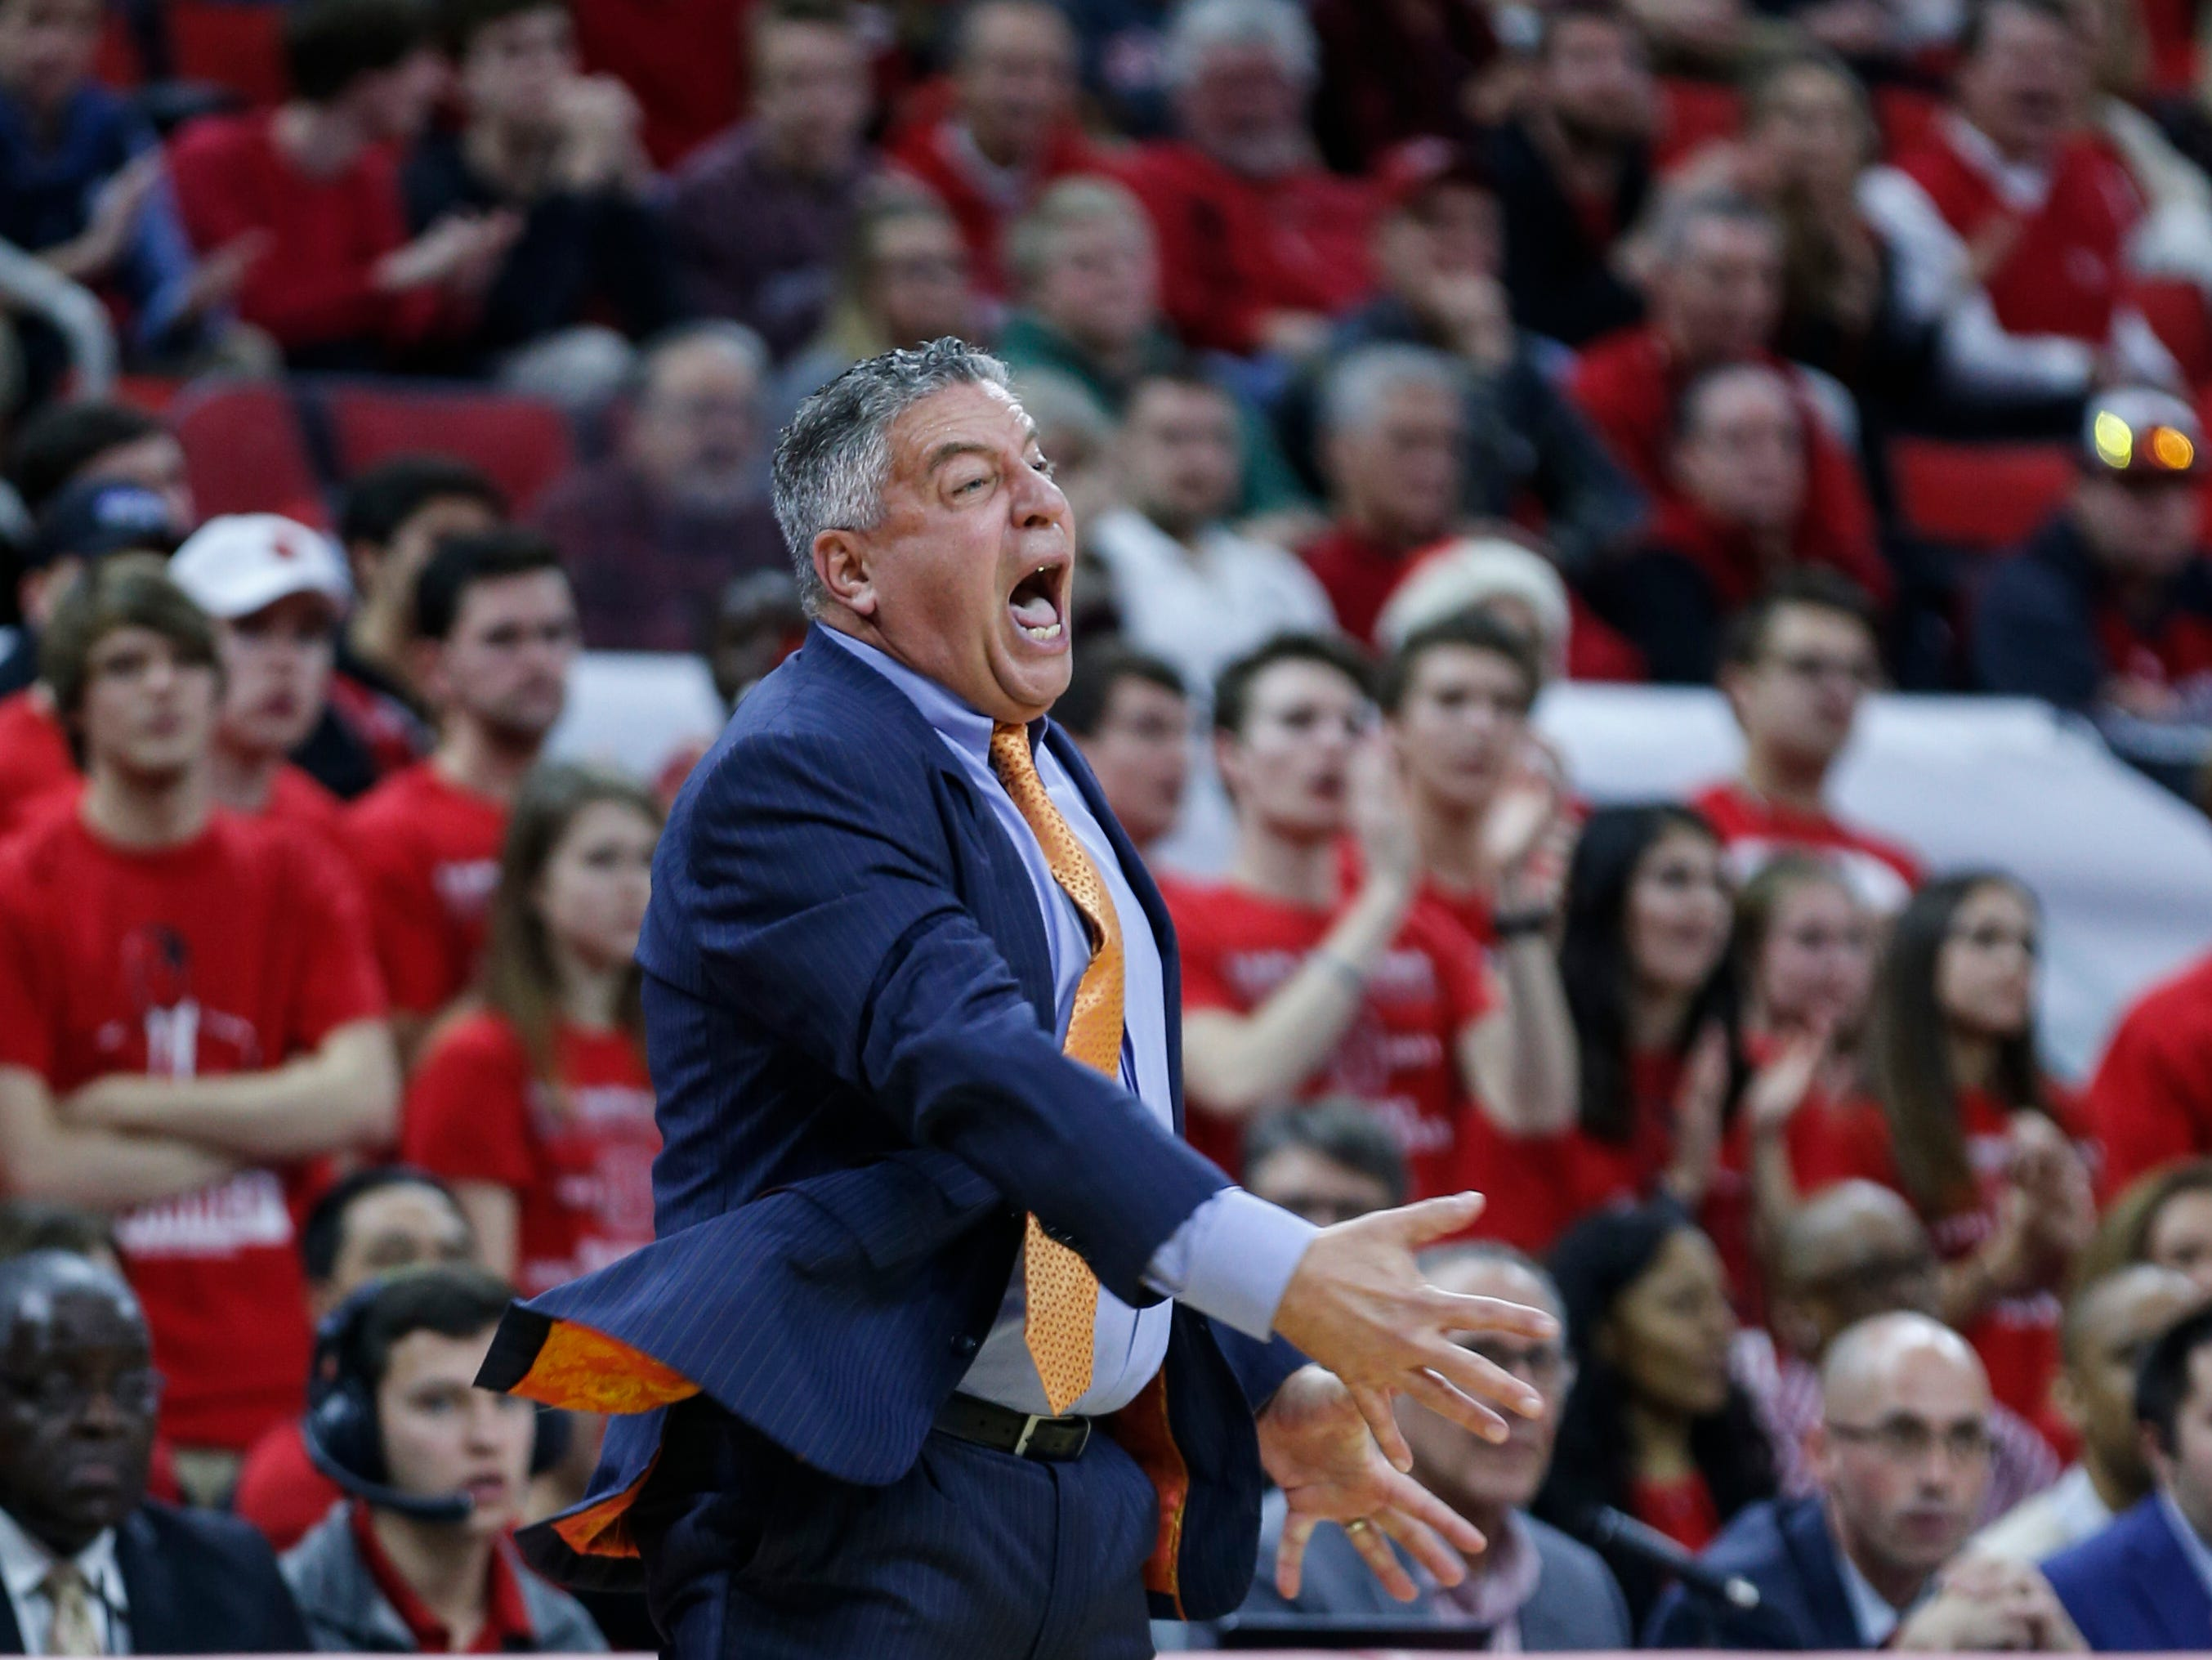 Dec 19, 2018; Raleigh, NC, USA; Auburn Tigers head coach Bruce Pearl yells to his team against the North Carolina State Wolfpack in the first half at PNC Arena. Mandatory Credit: Nell Redmond-USA TODAY Sports